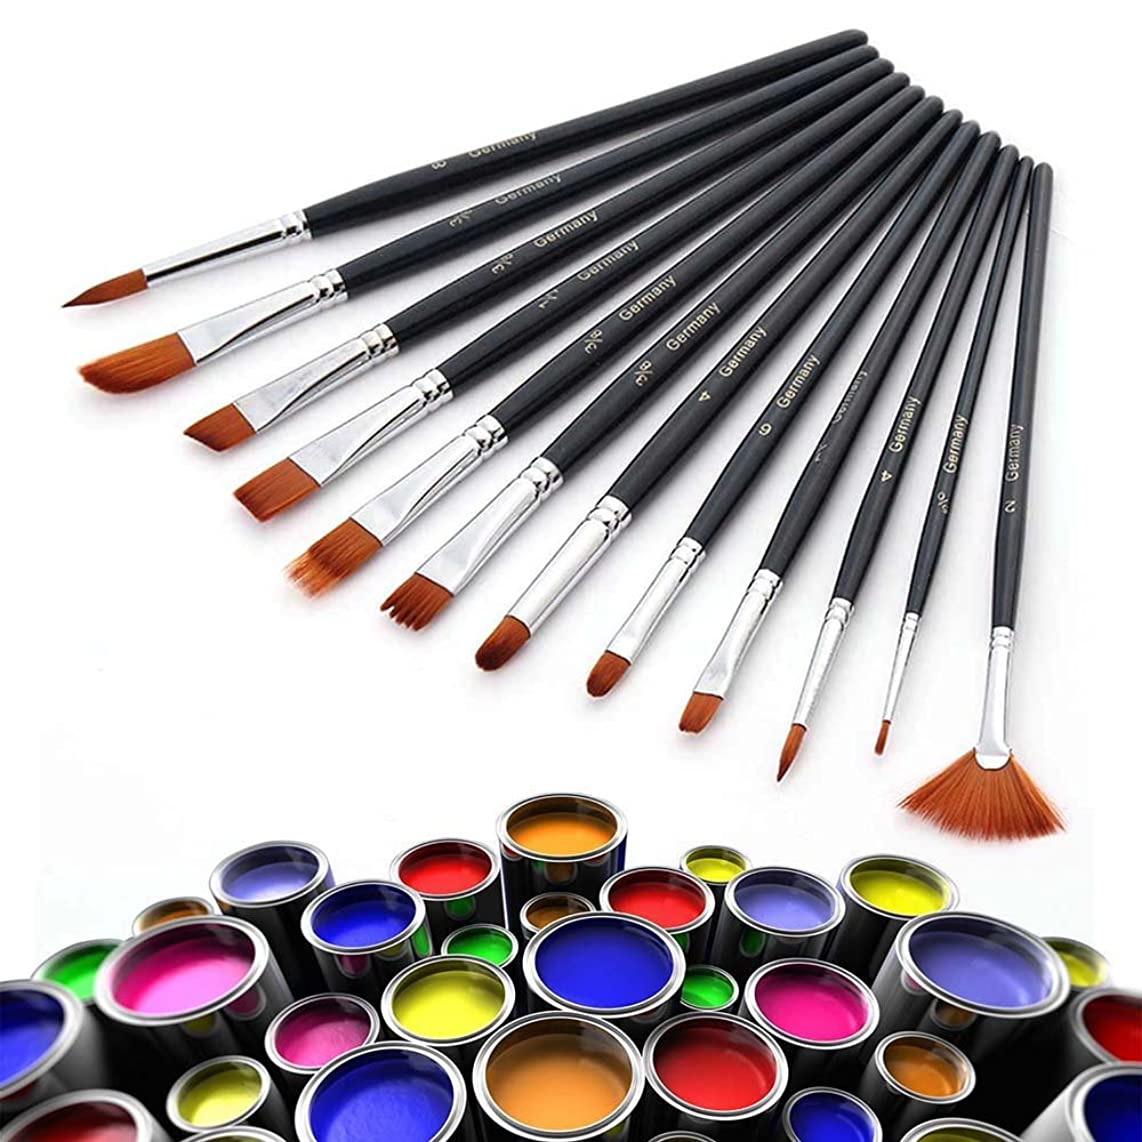 Promisy Paint Brushes 12 Pieces Set, Professional Fine Tip Paint Brush Set, Oil Painting Round Pointed Tip Nylon Hair Artist Brush for Acrylic Watercolor by Crafts